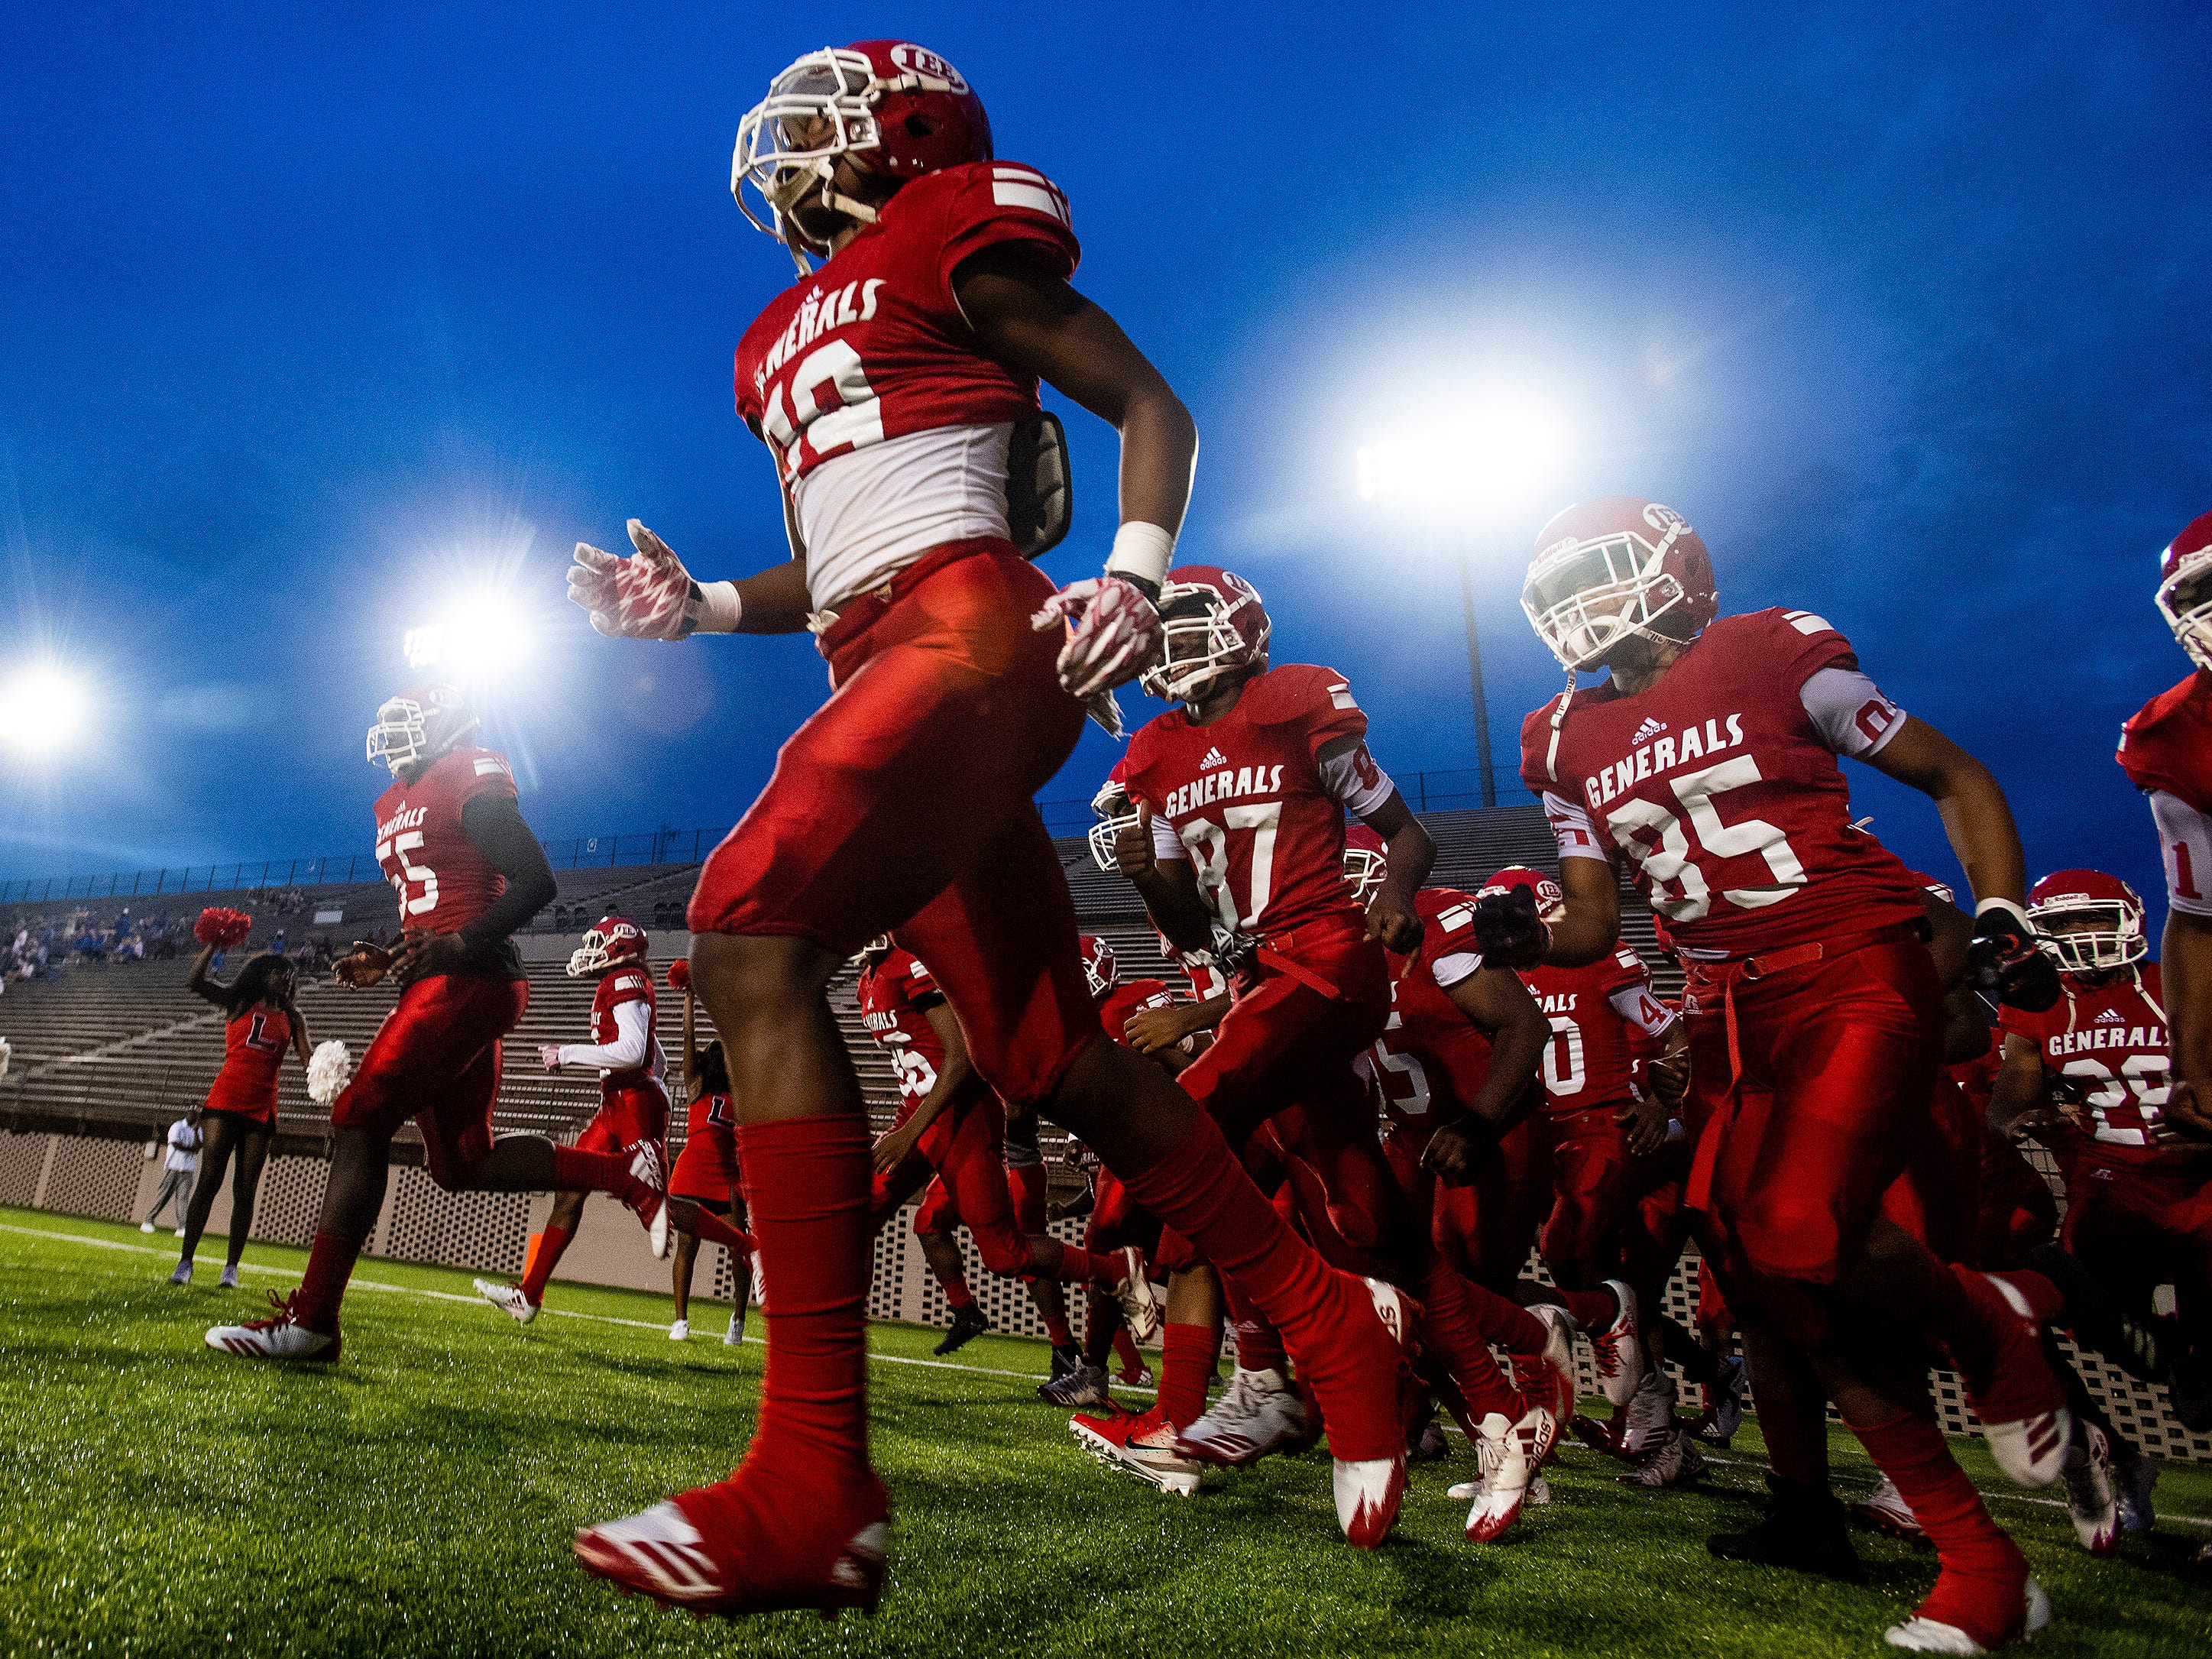 Lee players take the field against Auburn at Cramton Bowl in Montgomery, Ala., on Thursday September 13, 2018.